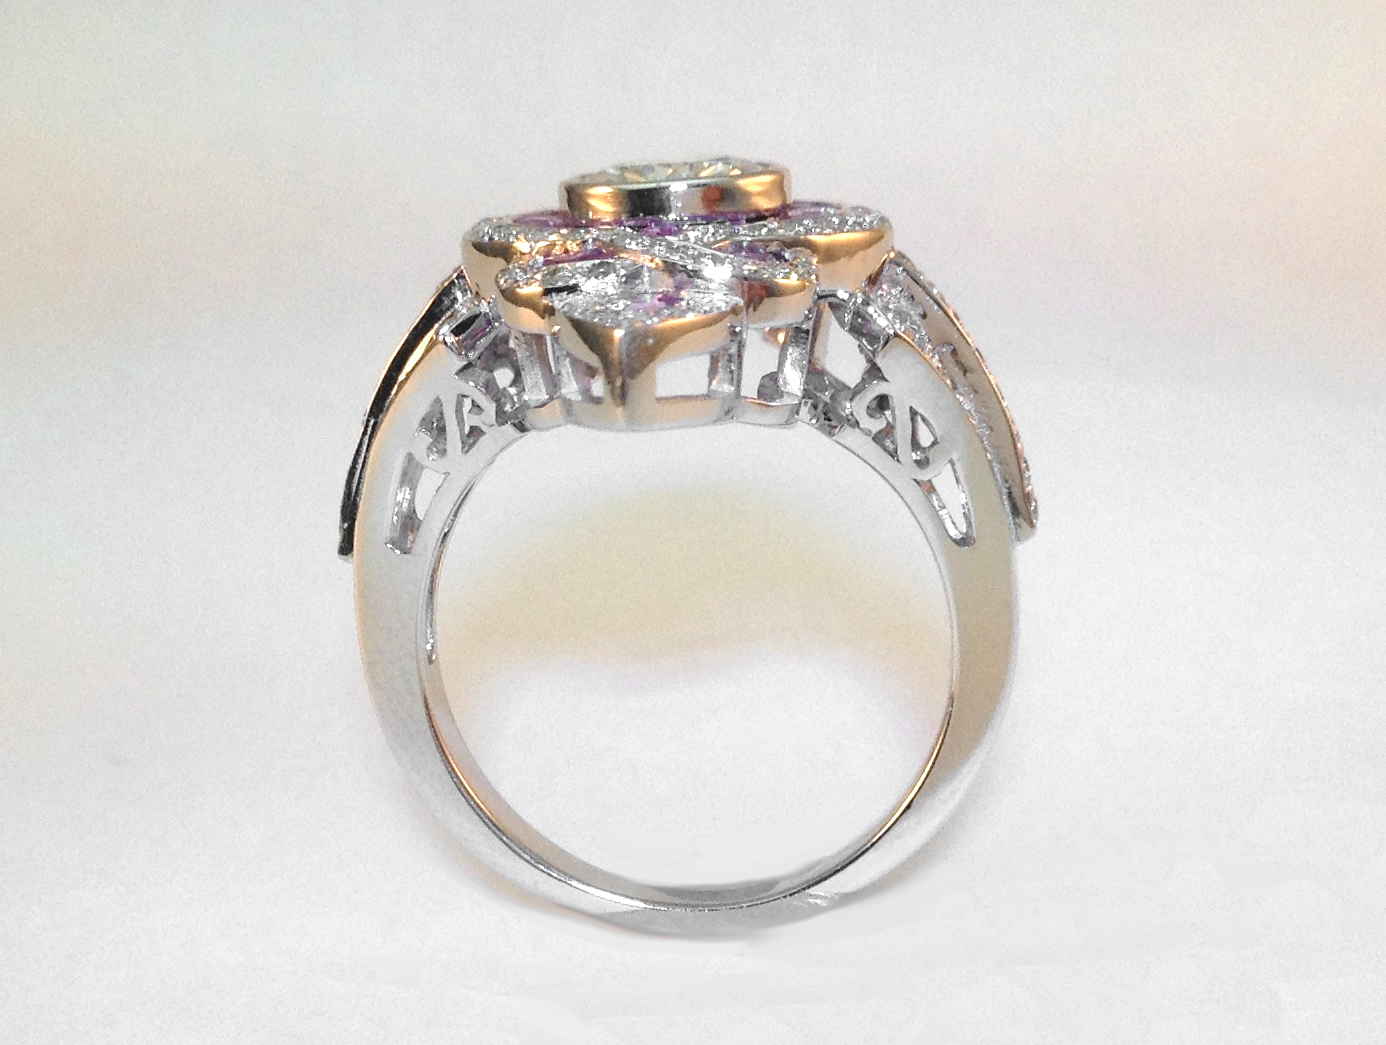 Fleur-De-Lis Art-Deco Diamond Engagement Ring in 14K White Gold